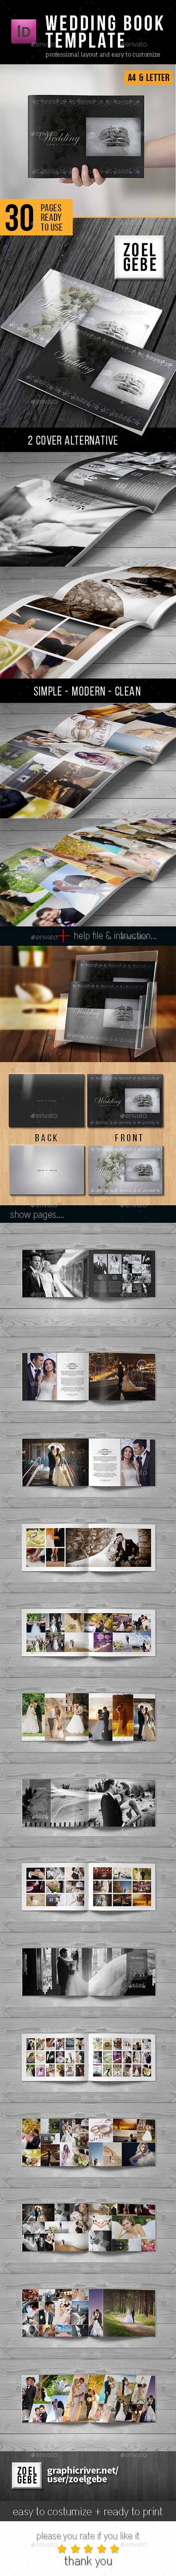 30 Page Wedding Book Template 12853361